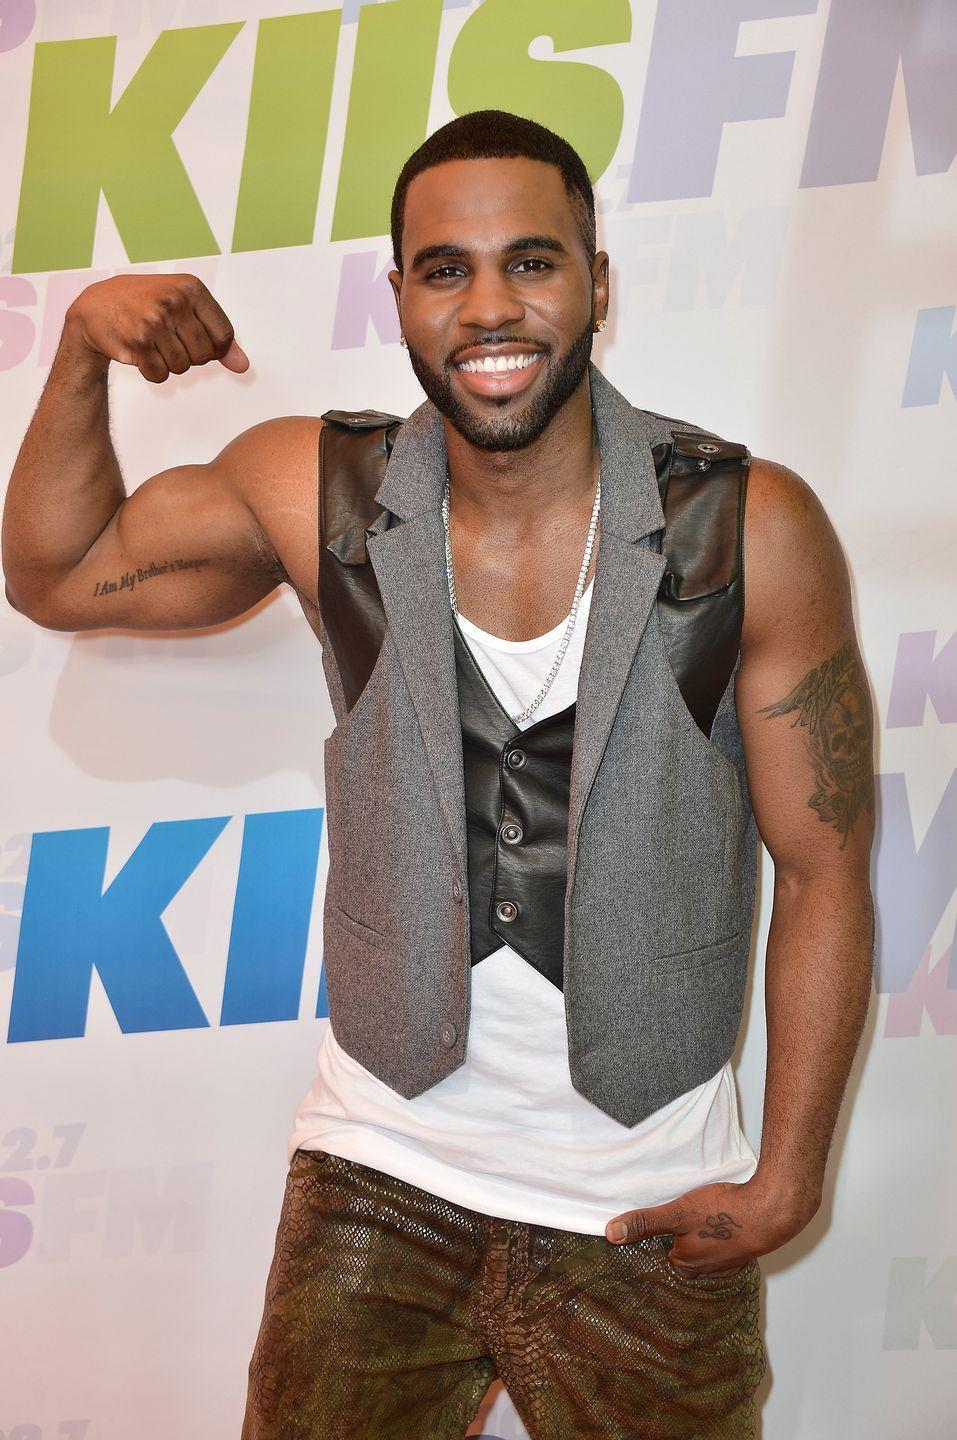 "<p>Jason Derulo knows the upside to wearing a sleeveless shirt on red carpet—it's easier to flex in. The singer told <a href=""https://www.menshealth.com/fitness/a29188690/jason-derulo-gym-fridge/"" rel=""nofollow noopener"" target=""_blank"" data-ylk=""slk:Men's Health"" class=""link rapid-noclick-resp"">Men's Health</a> he attains his physique through a high protein diet, intermittent fasting, and working out consistently with cardio and weight training. </p>"